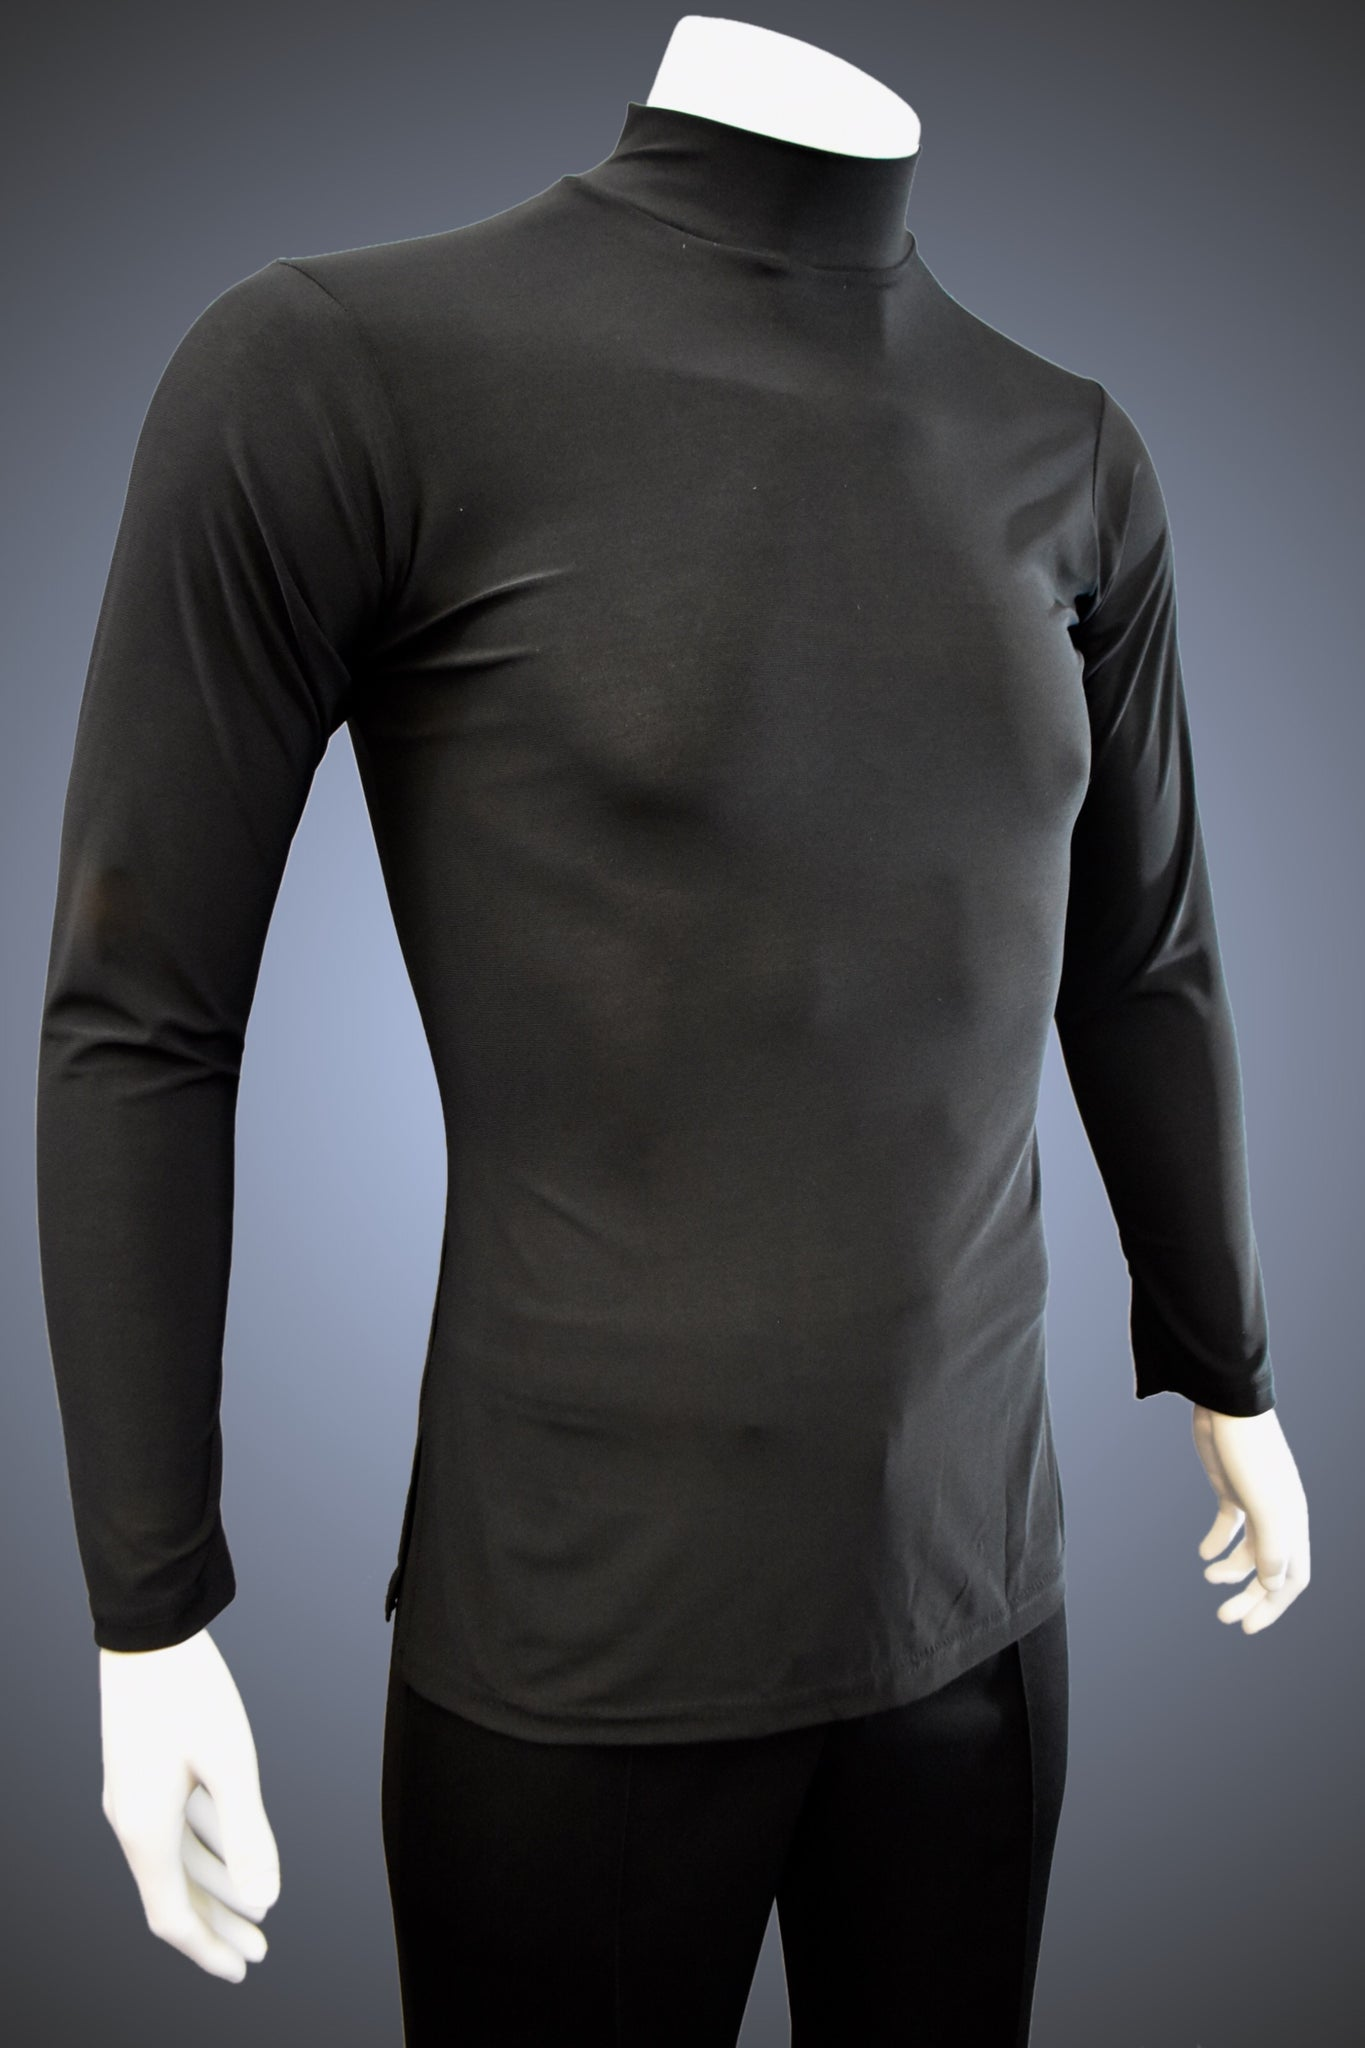 Turtleneck Latin/Rhythm Shirt with Side Slits - GS302 - Shirt by Randall Ready